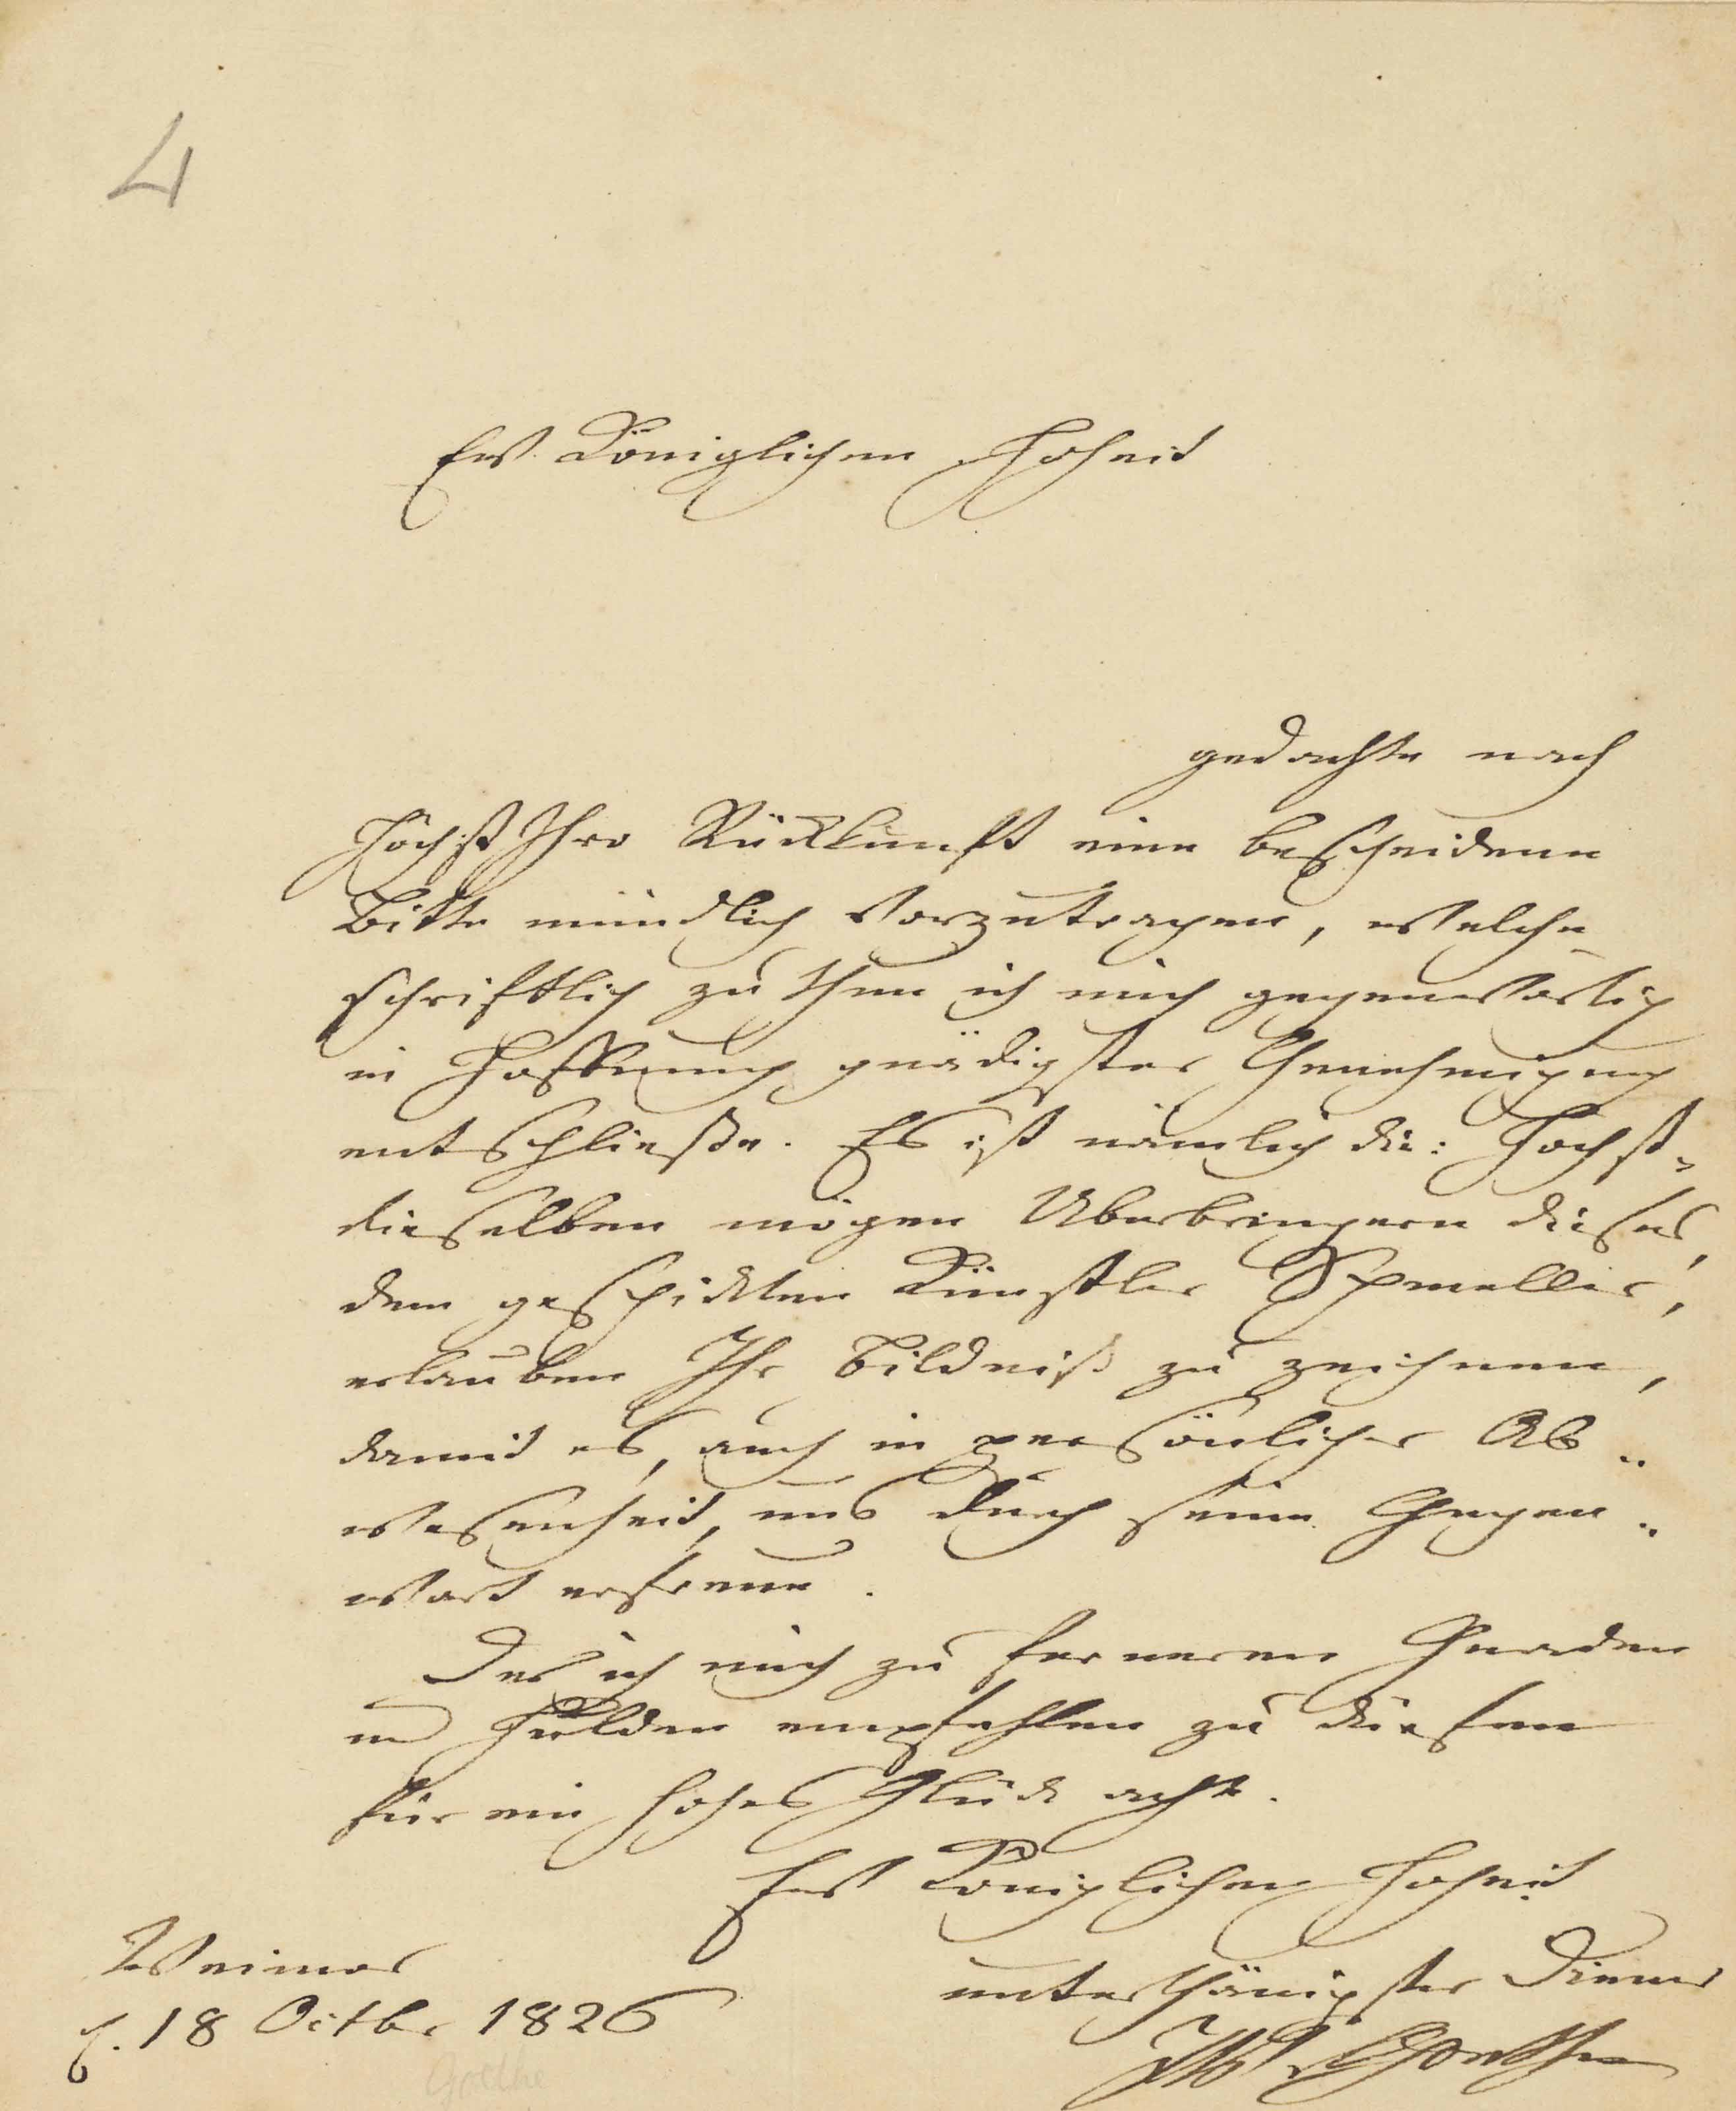 GOETHE, Johann Wolfgang von (1749-1832). Letter signed ('J.W. v. Goethe') to an unidentified prince [Prince Bernhard of Saxe-Weimar-Eisenach], Weimar, 18 October 1826, courteously submitting a request that the recipient should allow the artist [Johann Joseph] Schmeller, the bearer of the letter, to draw his portrait, one page, 4to, laid onto an album leaf. Provenance: from the autograph collection of Sir Francis Clare Ford (1828-1899).